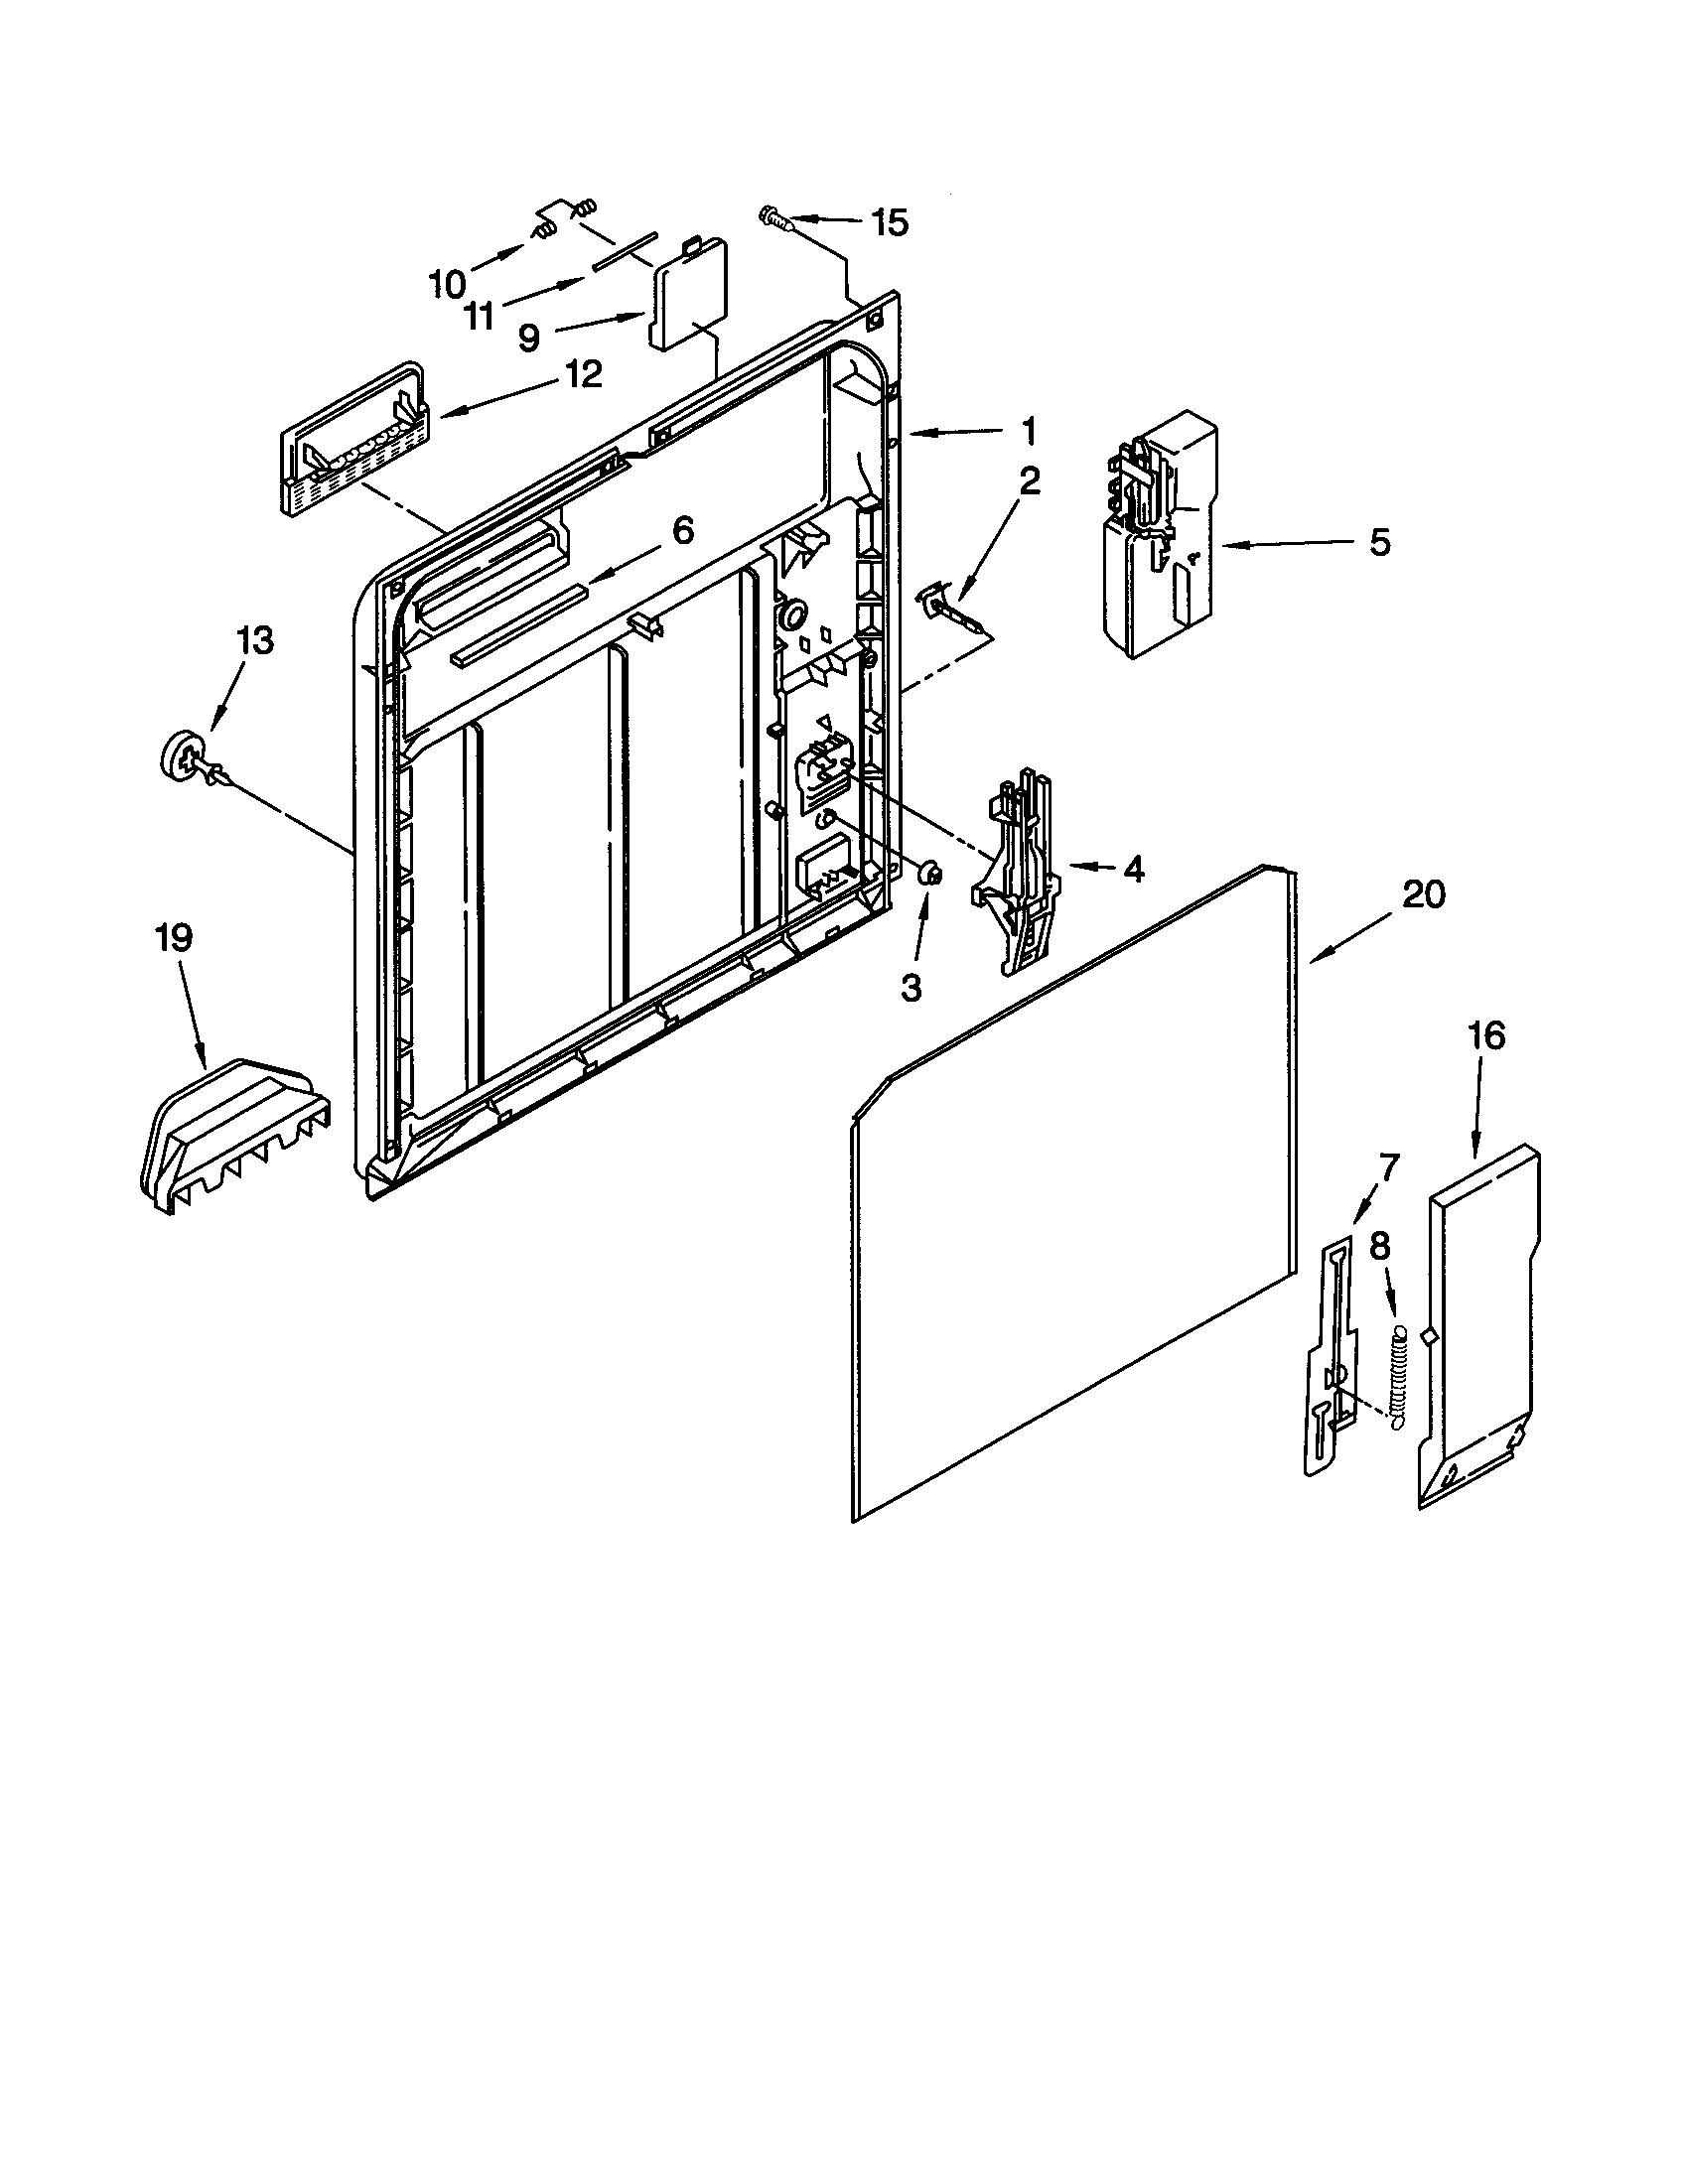 INNER DOOR Diagram & Parts List for Model du920pfgq3